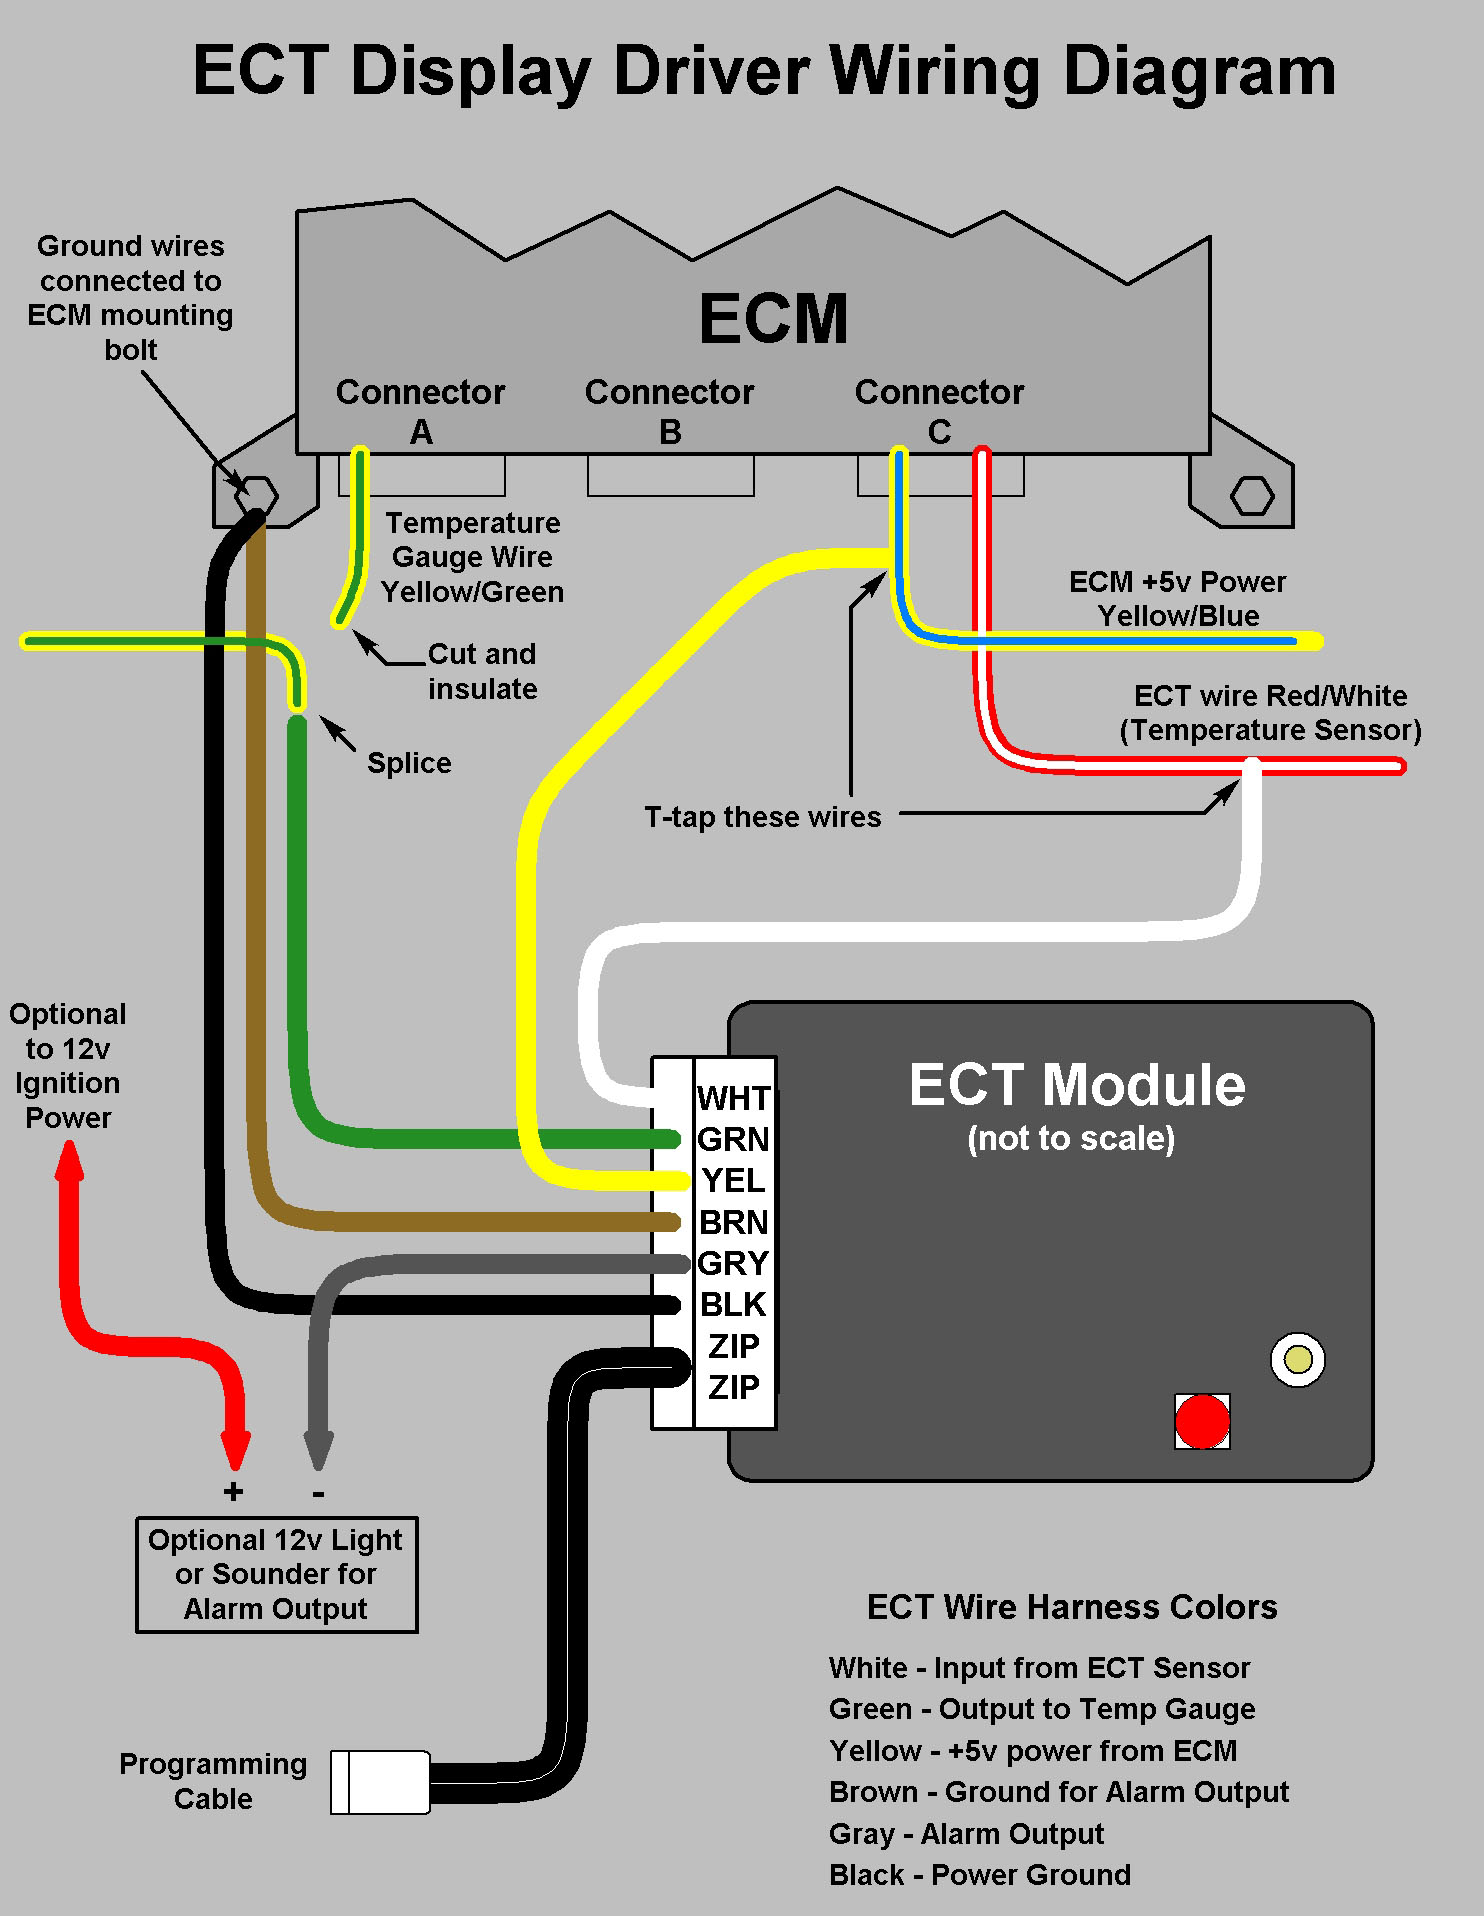 ECT wiring diagram aem ems 4 wiring diagram aem ems fox body mustangs \u2022 free wiring ems stinger wiring diagram at love-stories.co